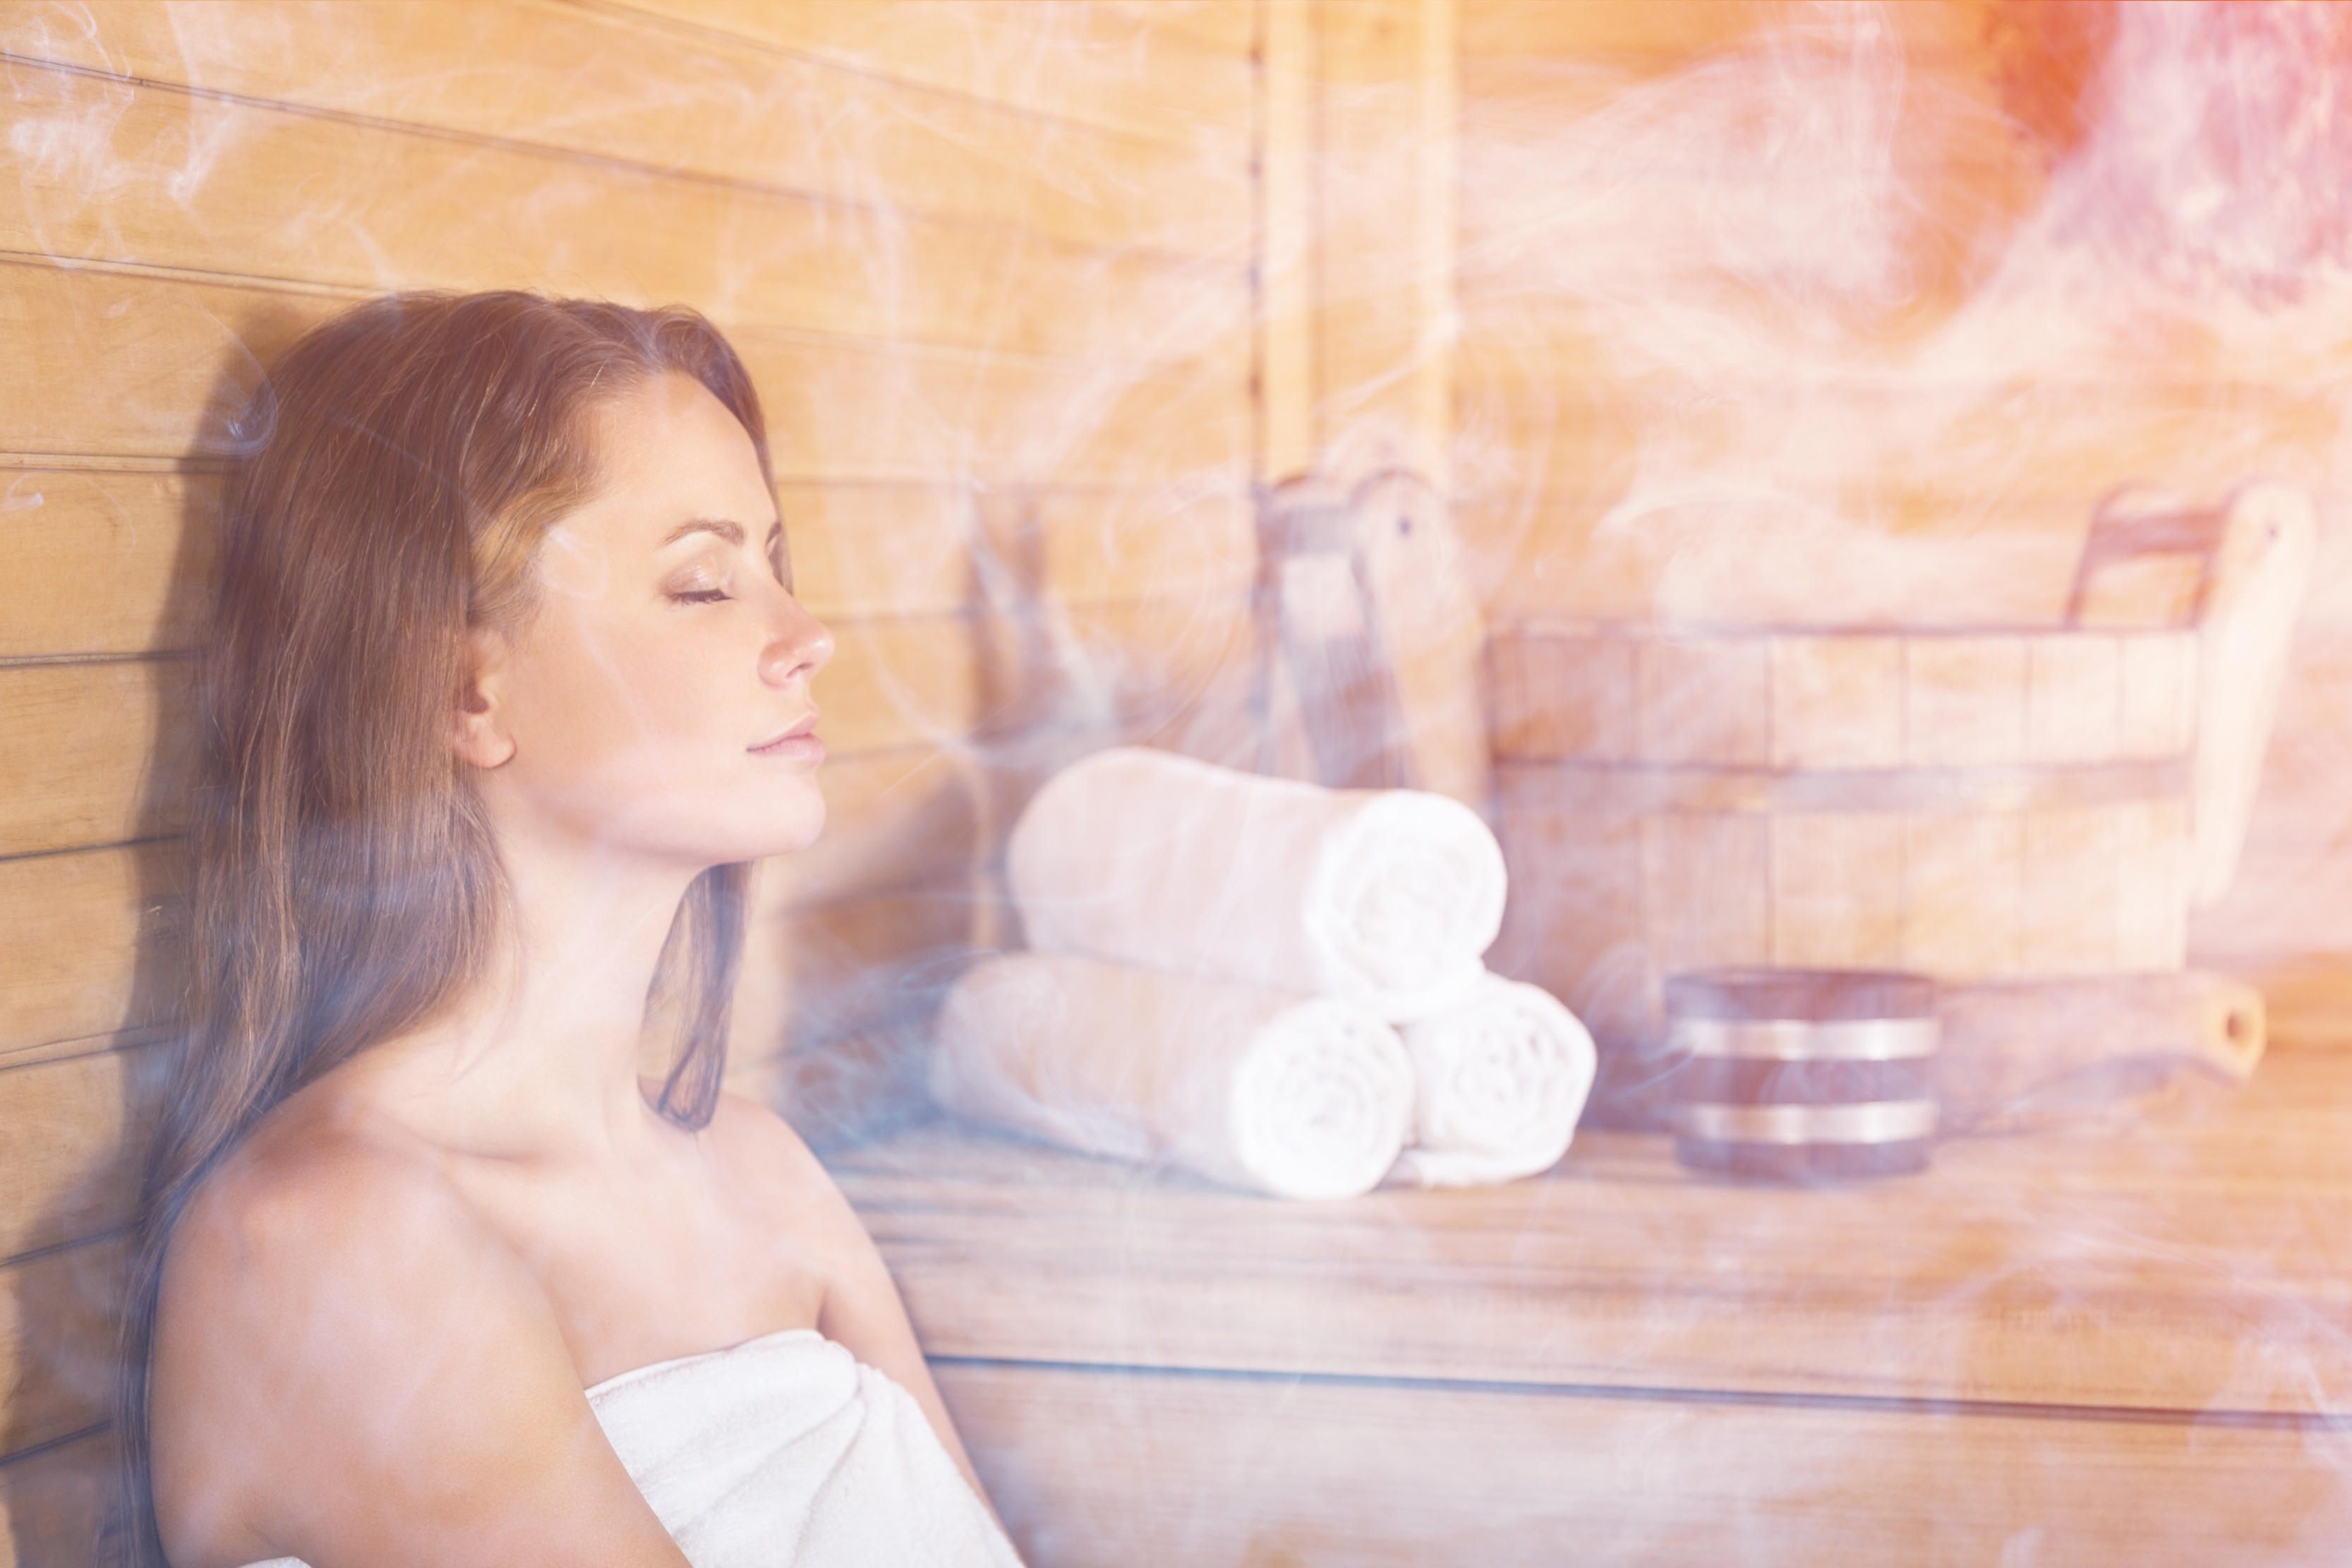 A new study found that sauna bathing is linked to a reduced risk of vascular diseases, such as high blood pressure and cardiovascular disease.